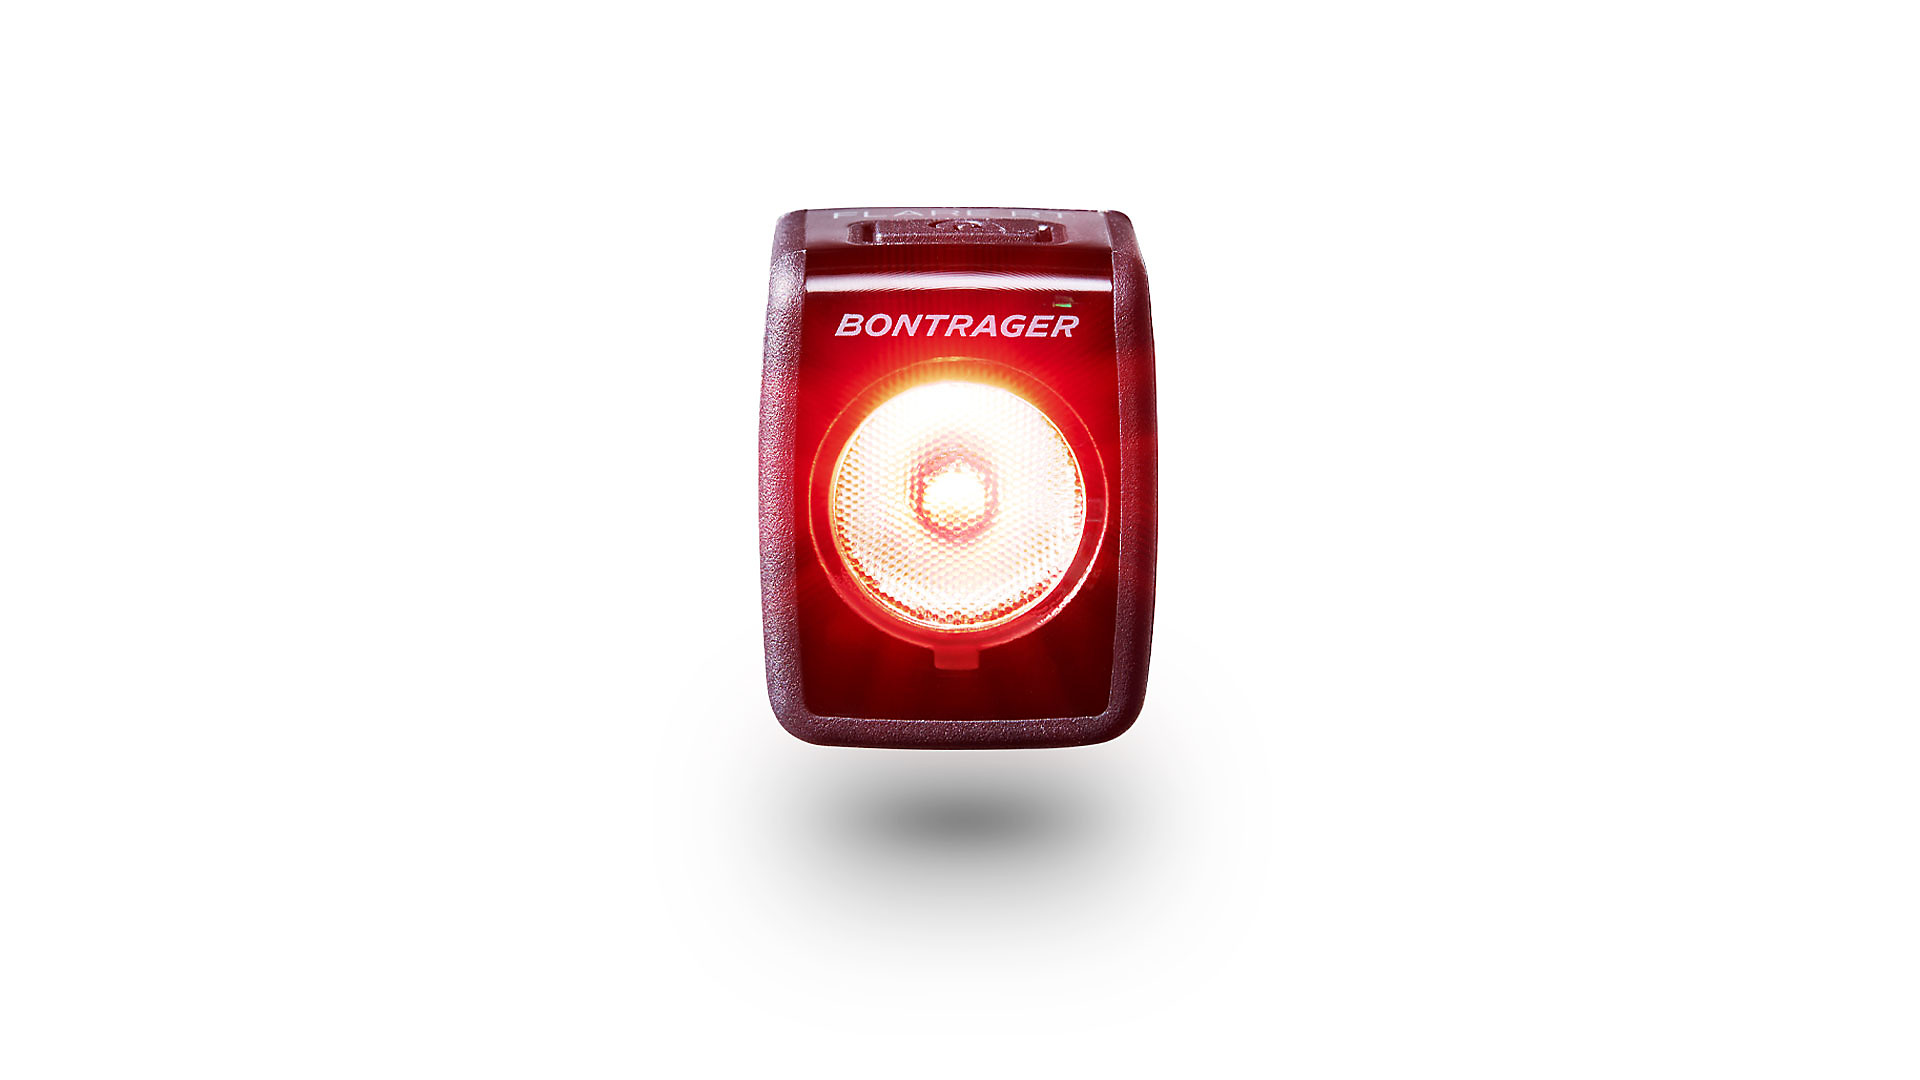 bontrager flare rt daytime running light for cyclists